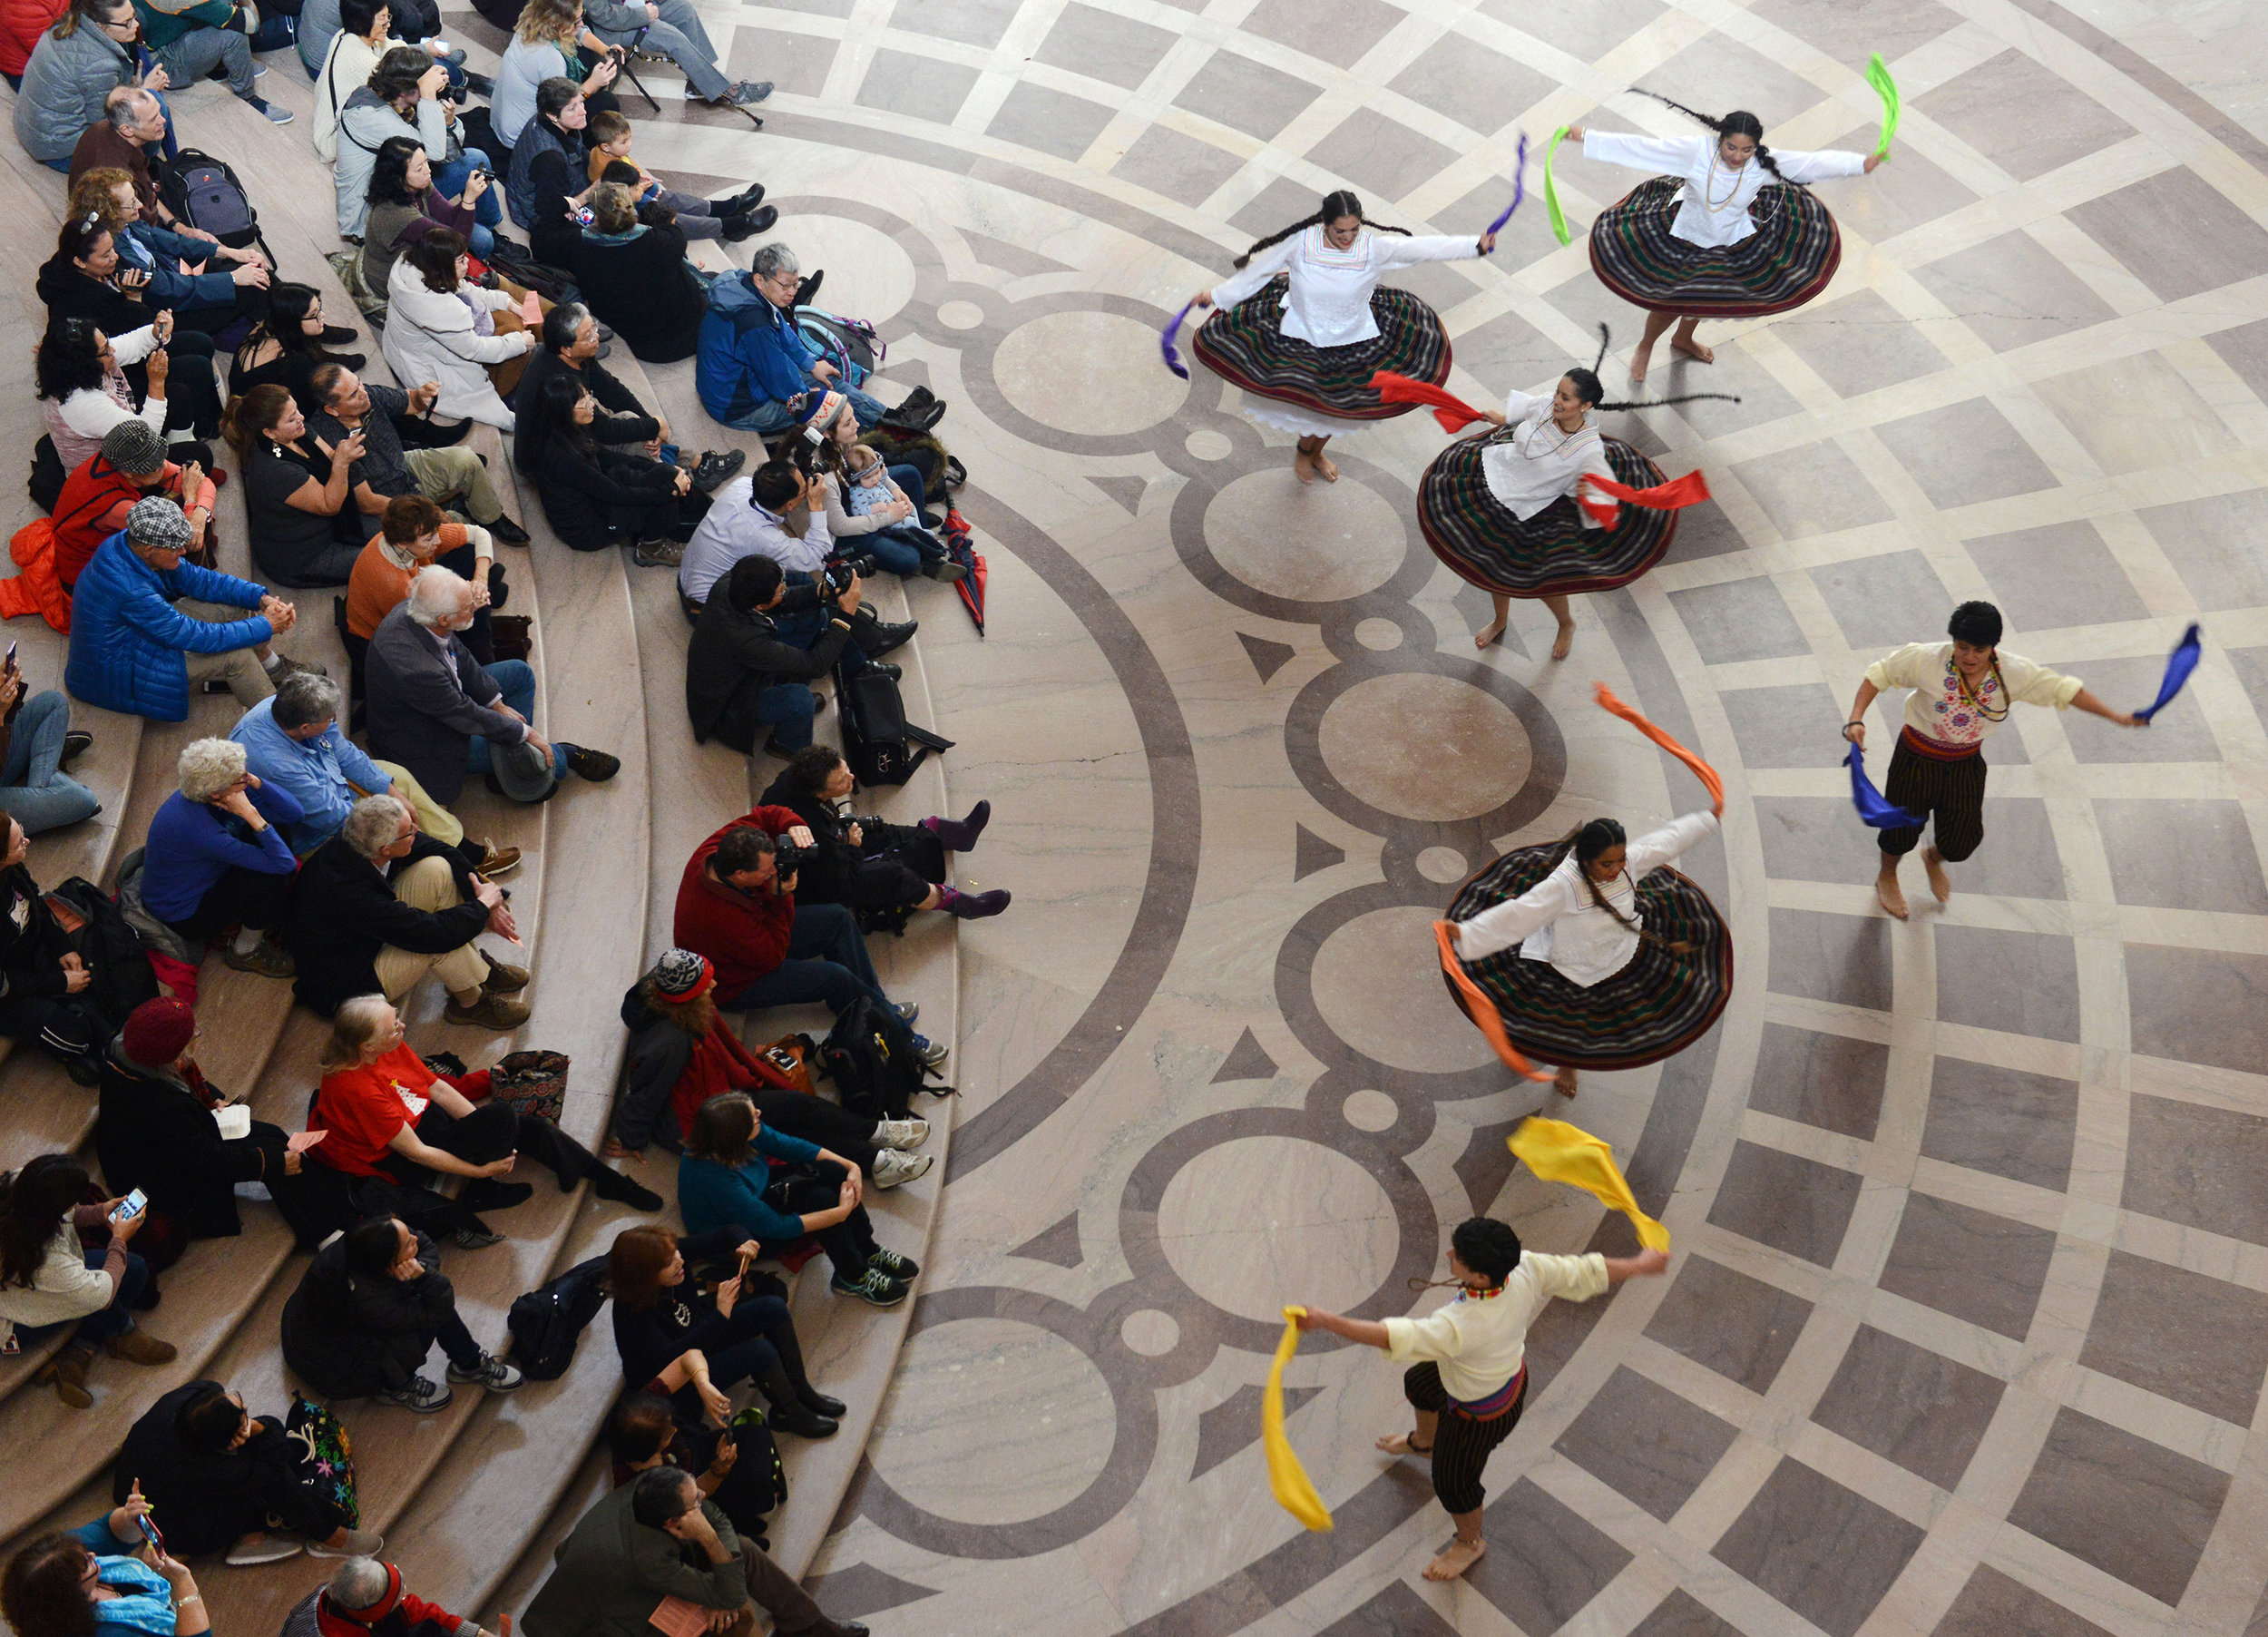 Members of Bolivia Corazón de América perform for an audience during a free lunchtime noon concert as a part of the Rotunda Dance Series in City Hall in San Francisco, Ca. on Friday, December 9, 2016. Photo by David Andrews